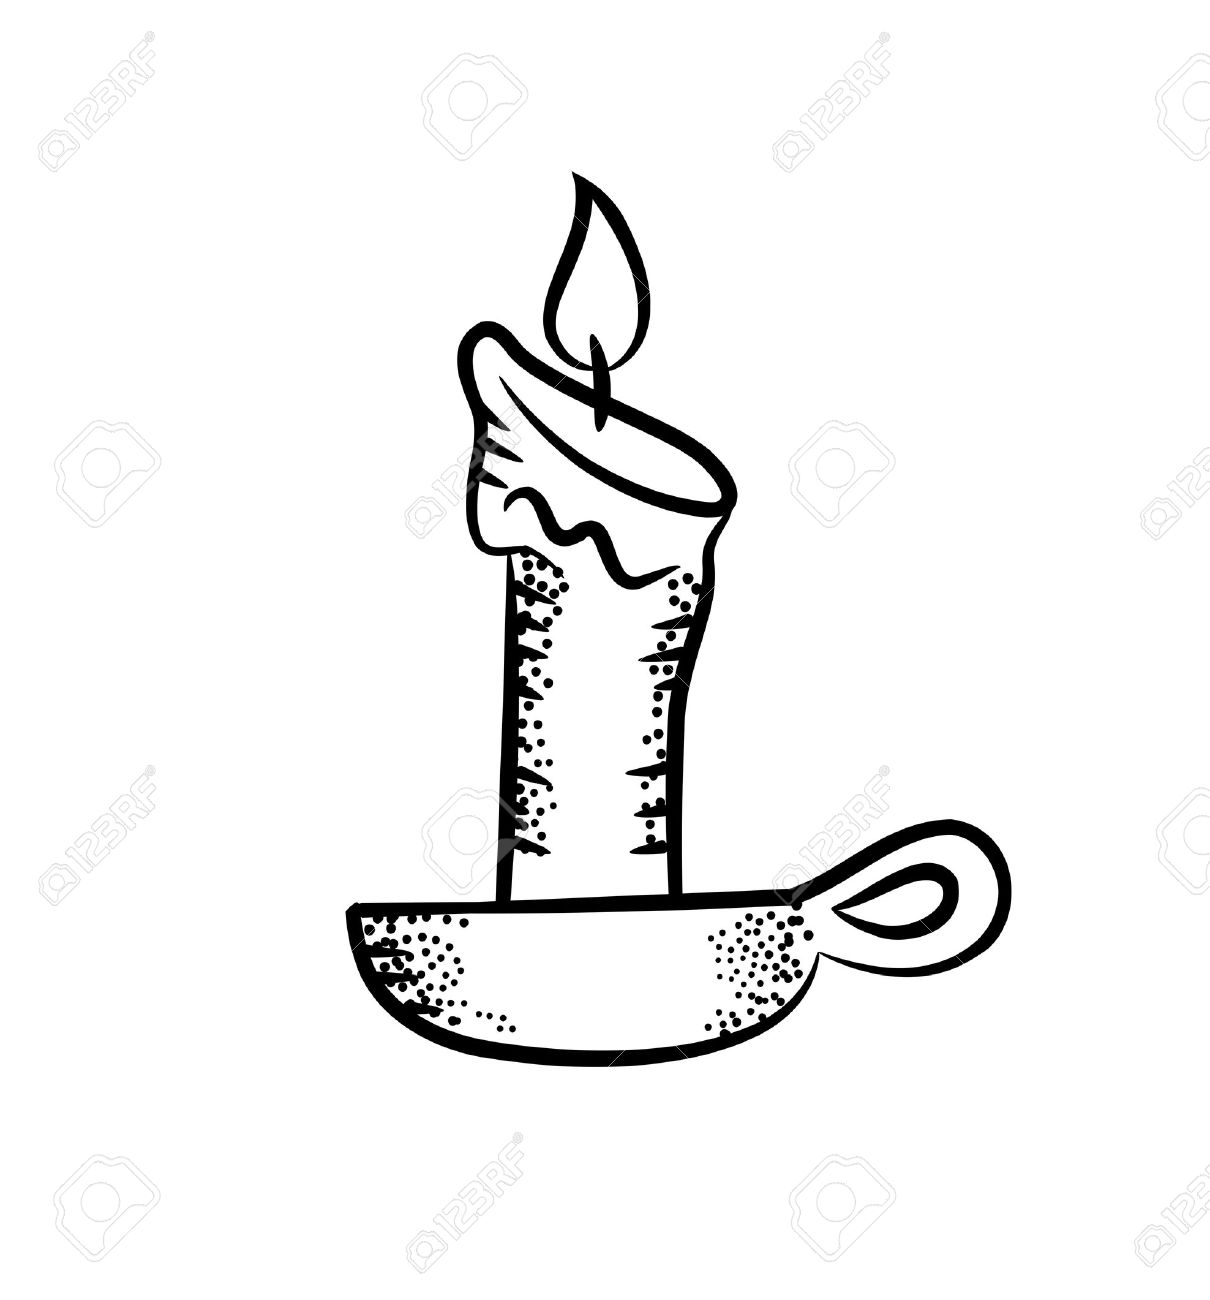 1210x1300 Wax Candle Clipart, Explore Pictures